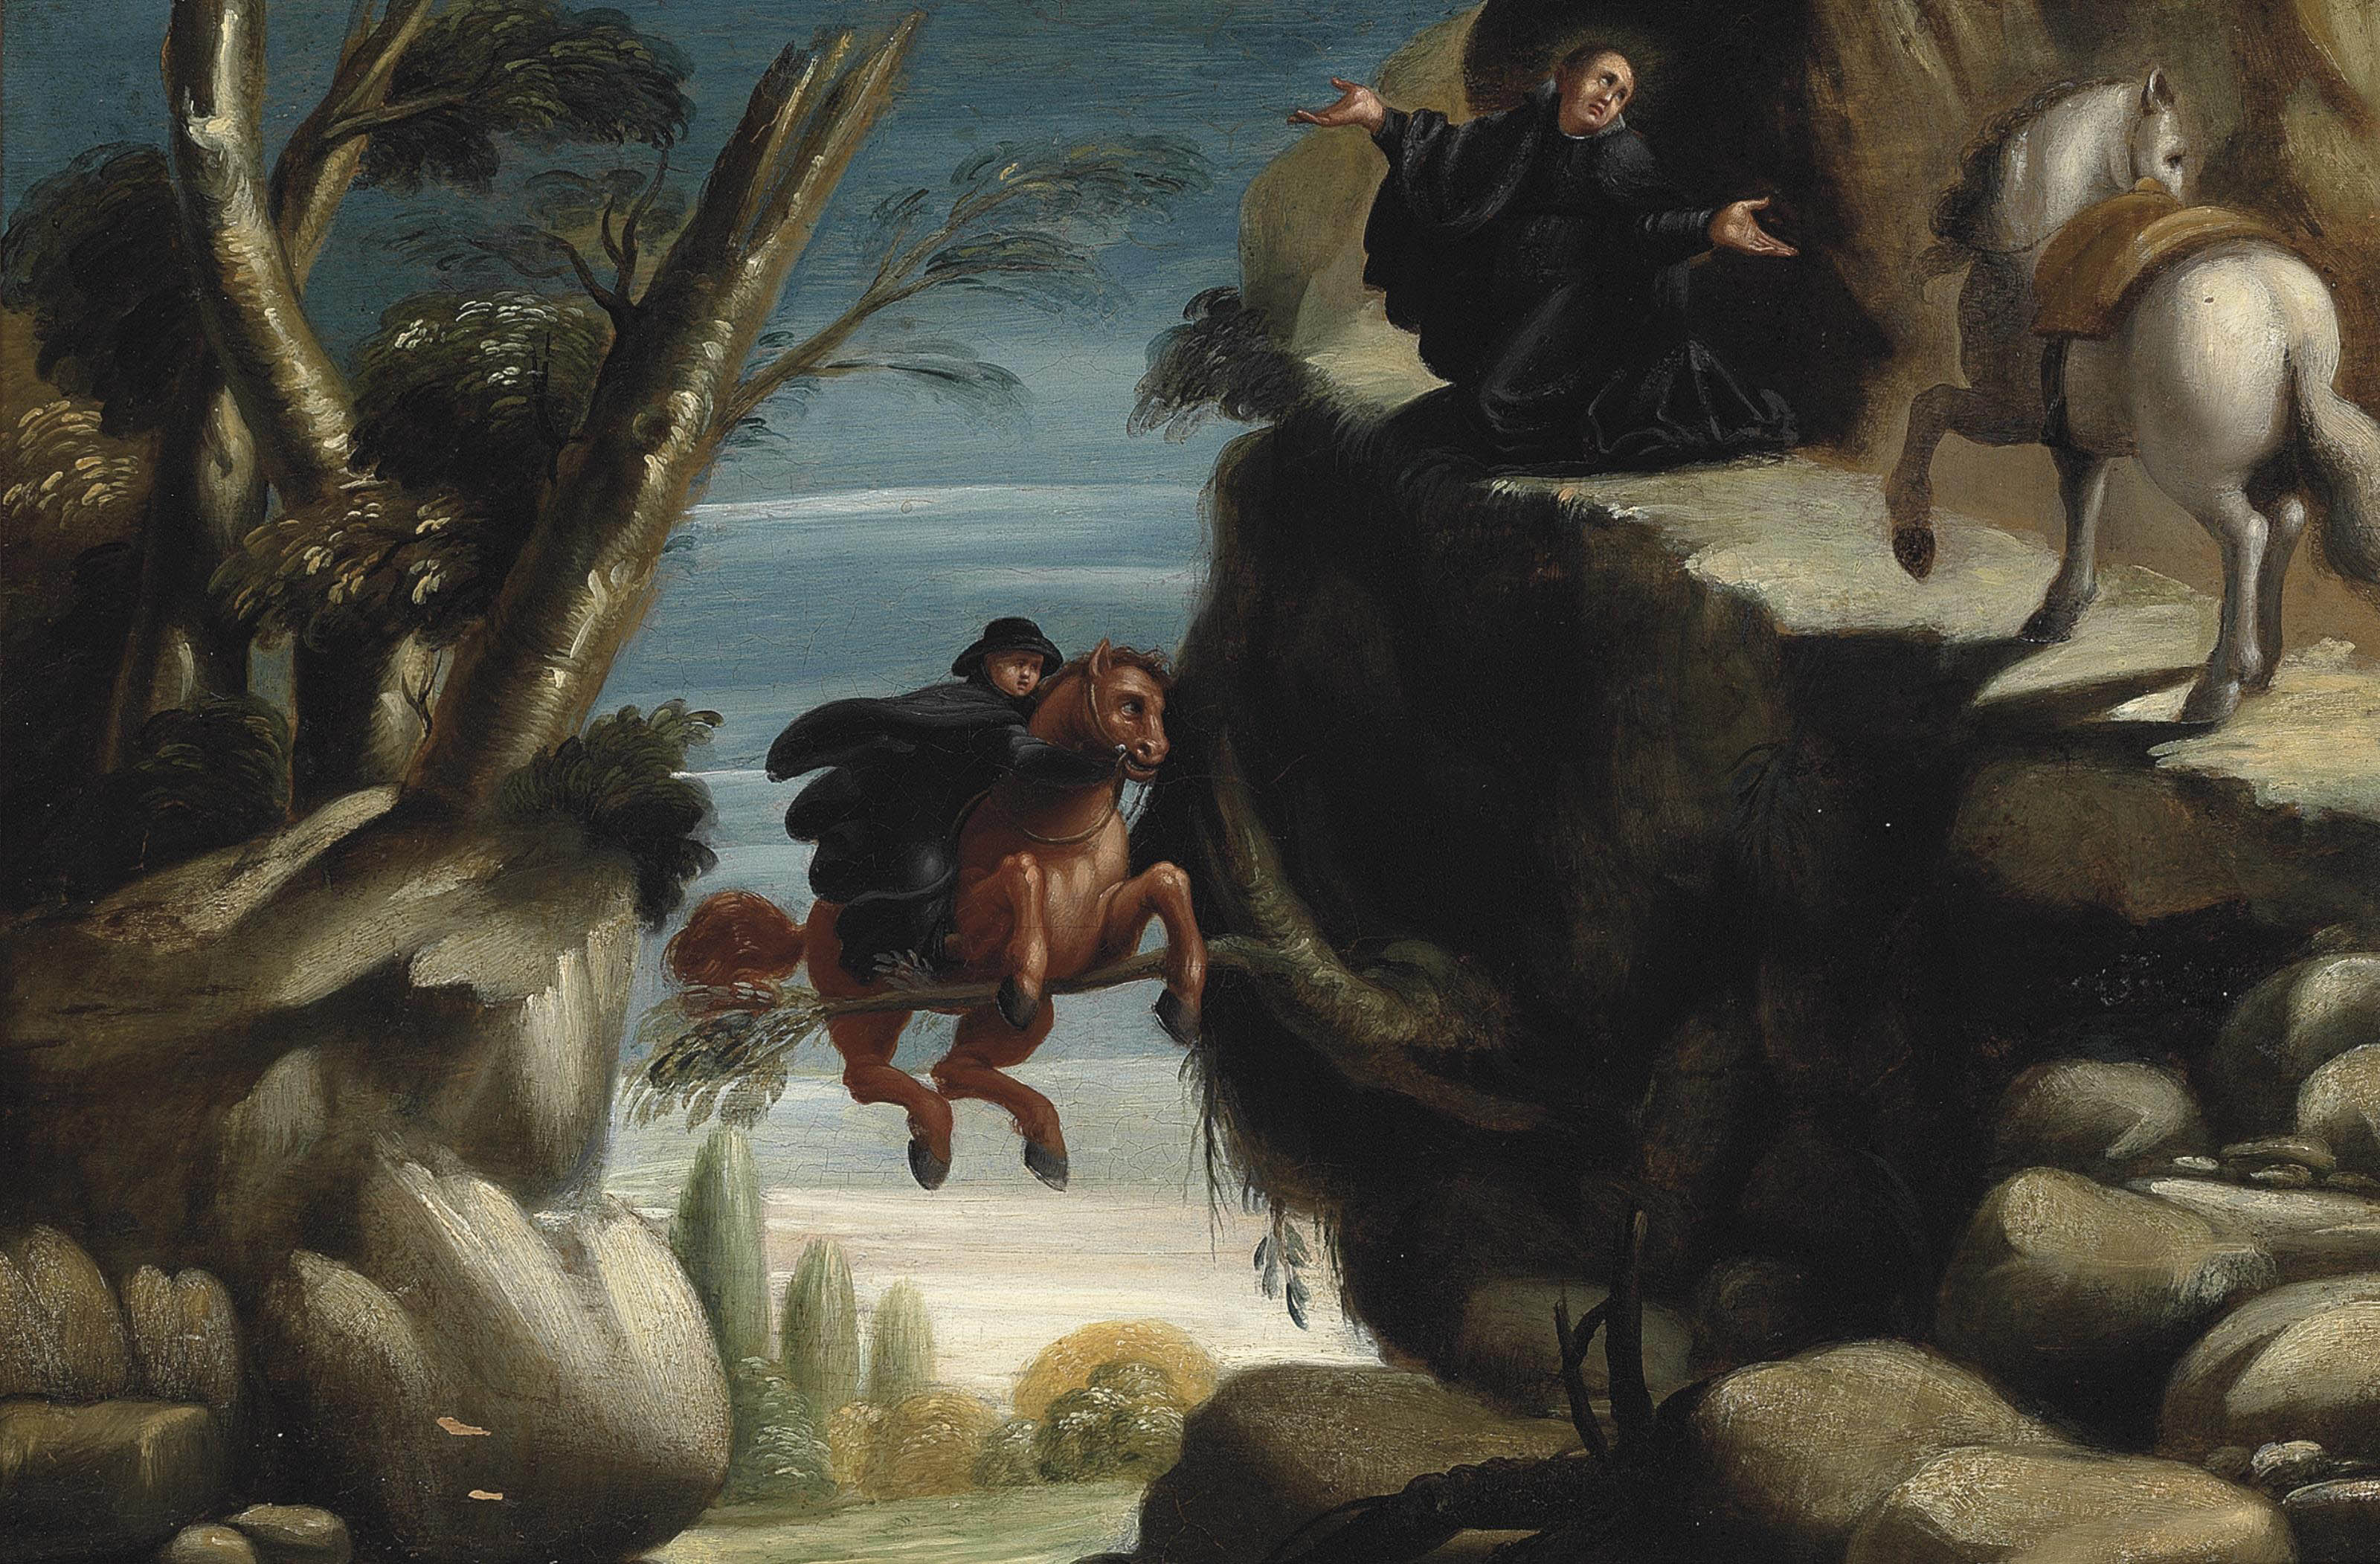 Saint Nicholas interceding and saving a rider and his horse from falling into a precipice